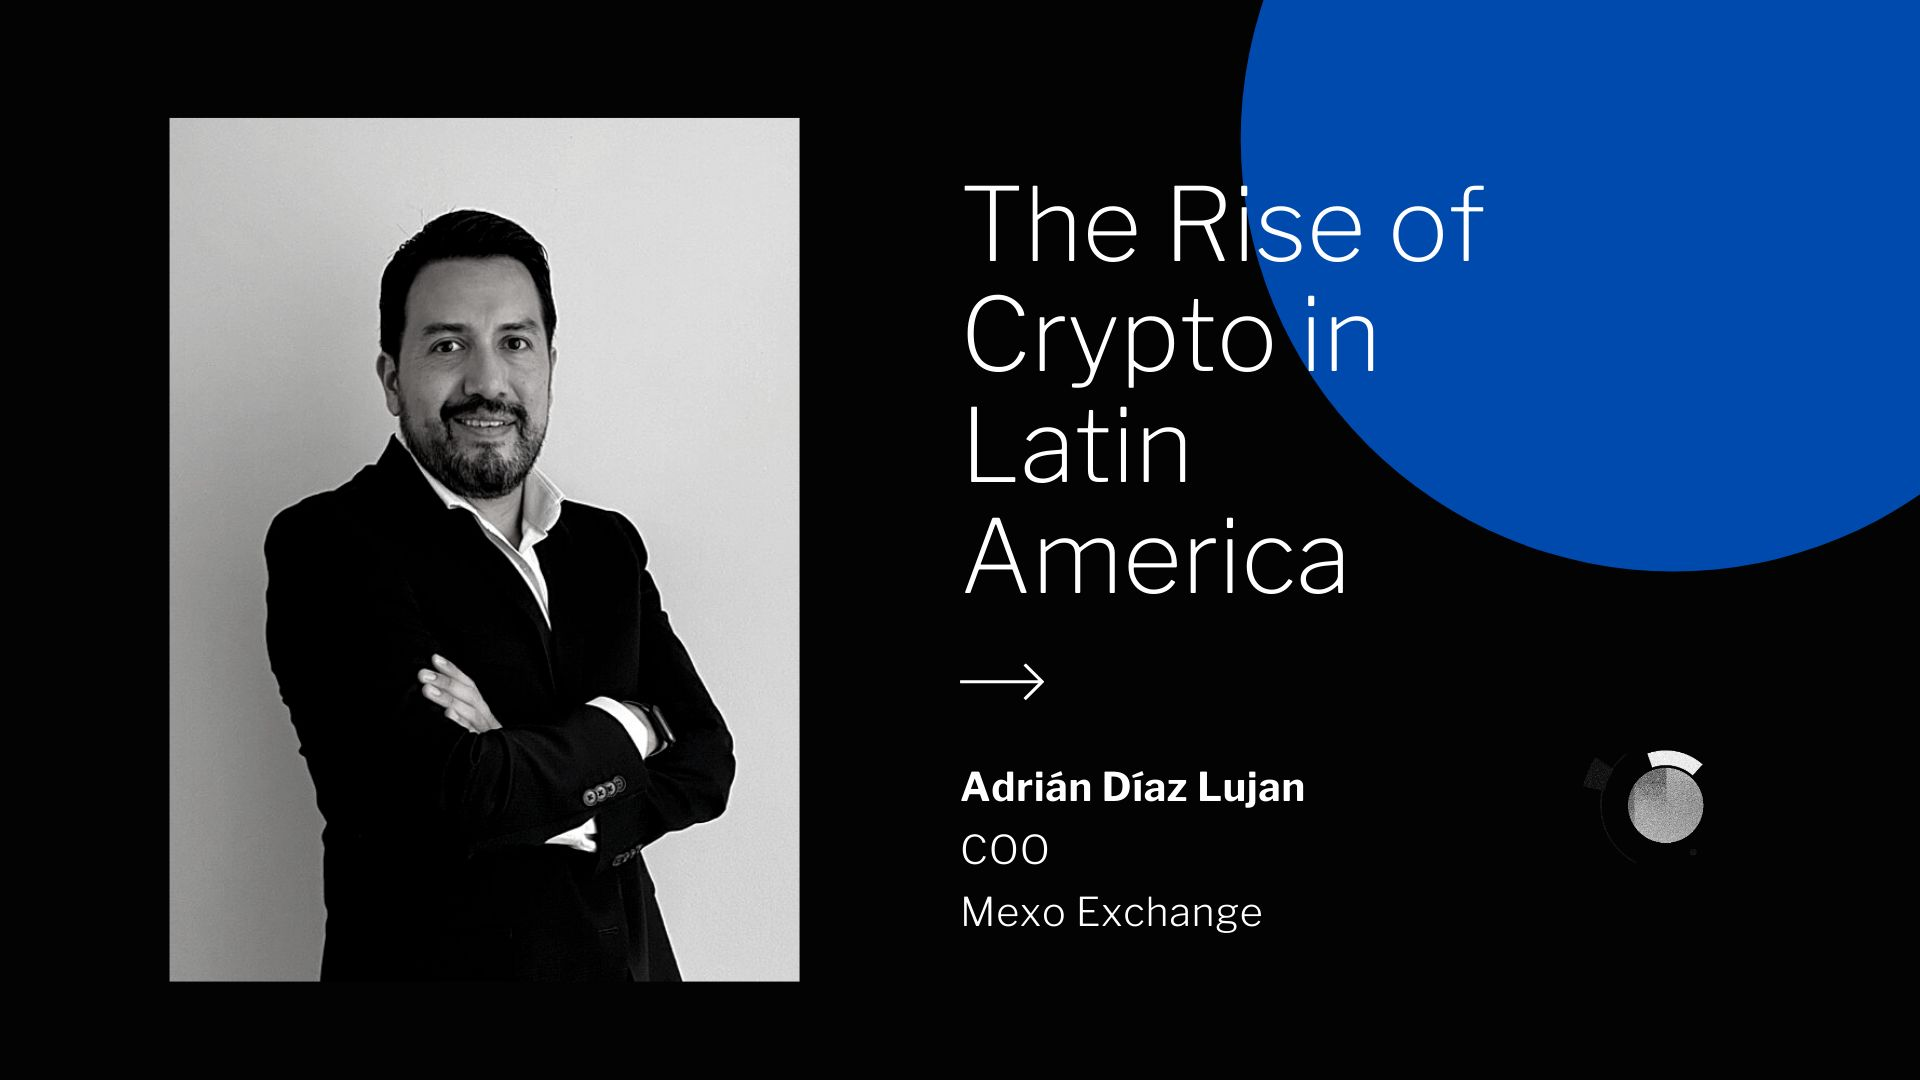 /the-rise-of-cryptocurrencies-in-latin-america-interview-flv3tz0 feature image